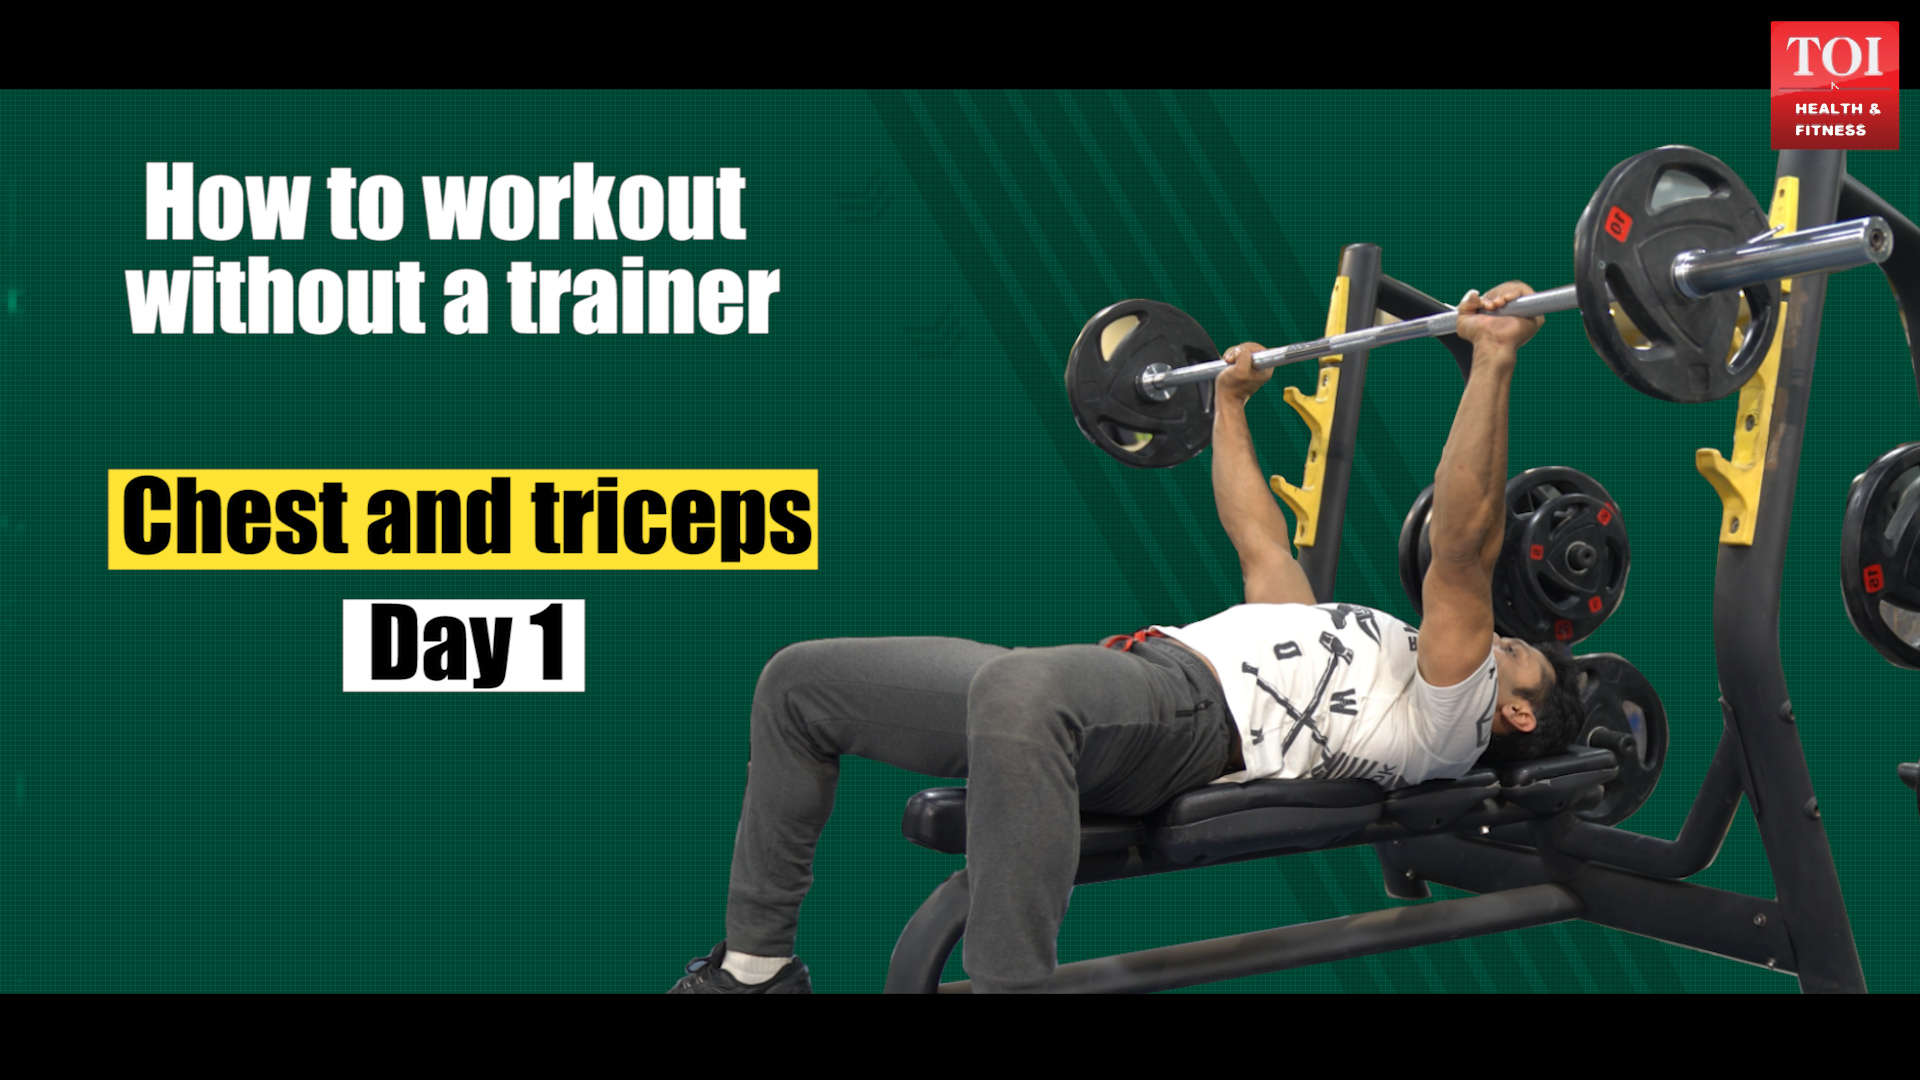 how-to-workout-without-a-trainer-day-1